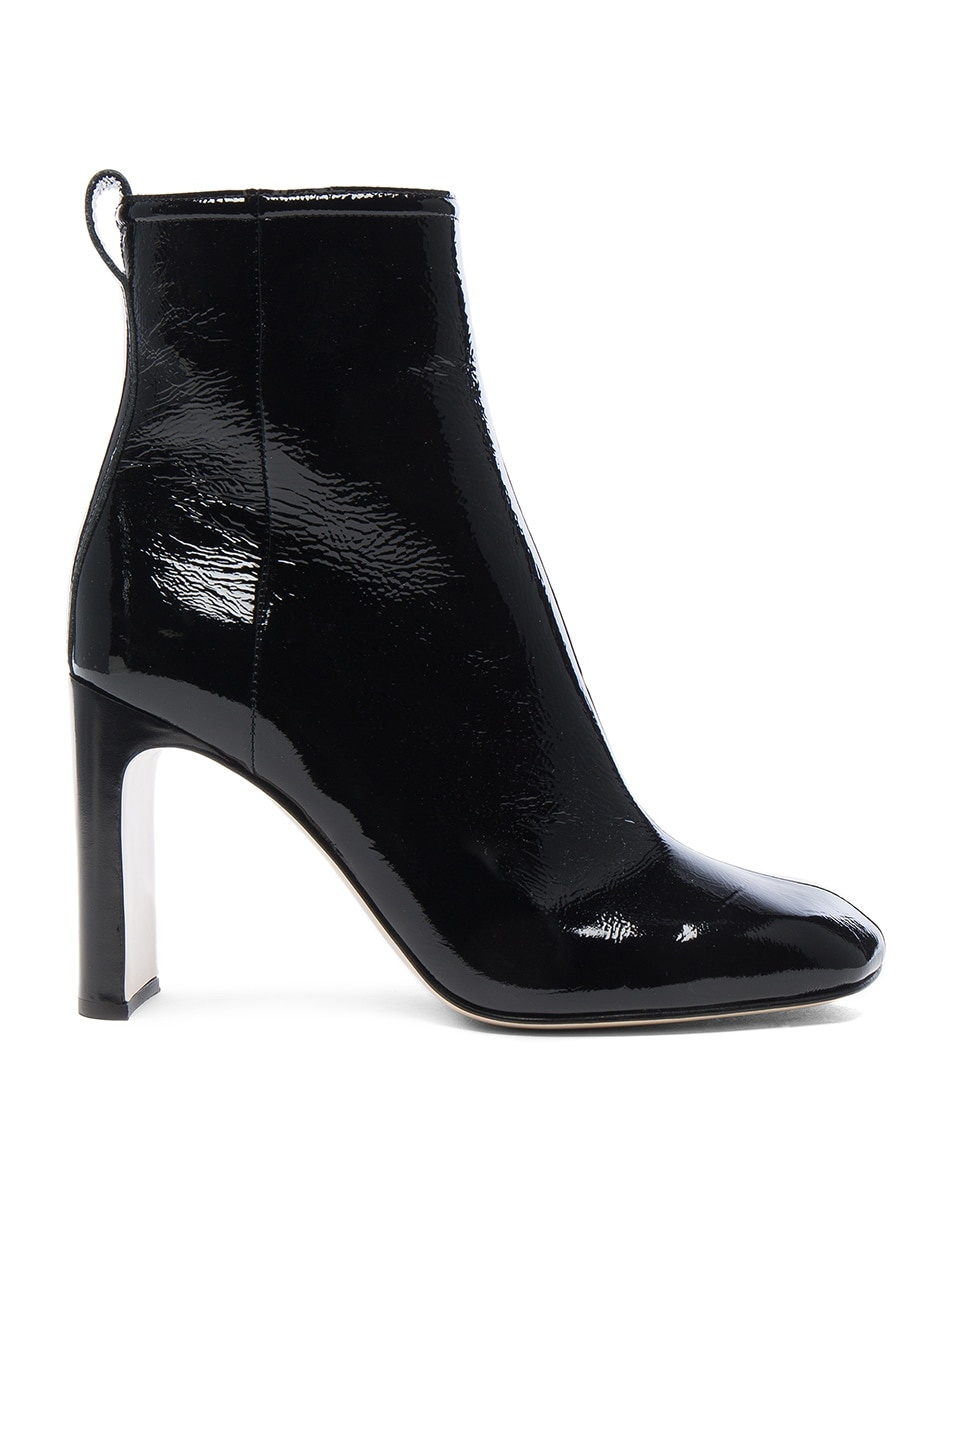 Image 1 of Rag & Bone Patent Leather Ellis Boot in Black